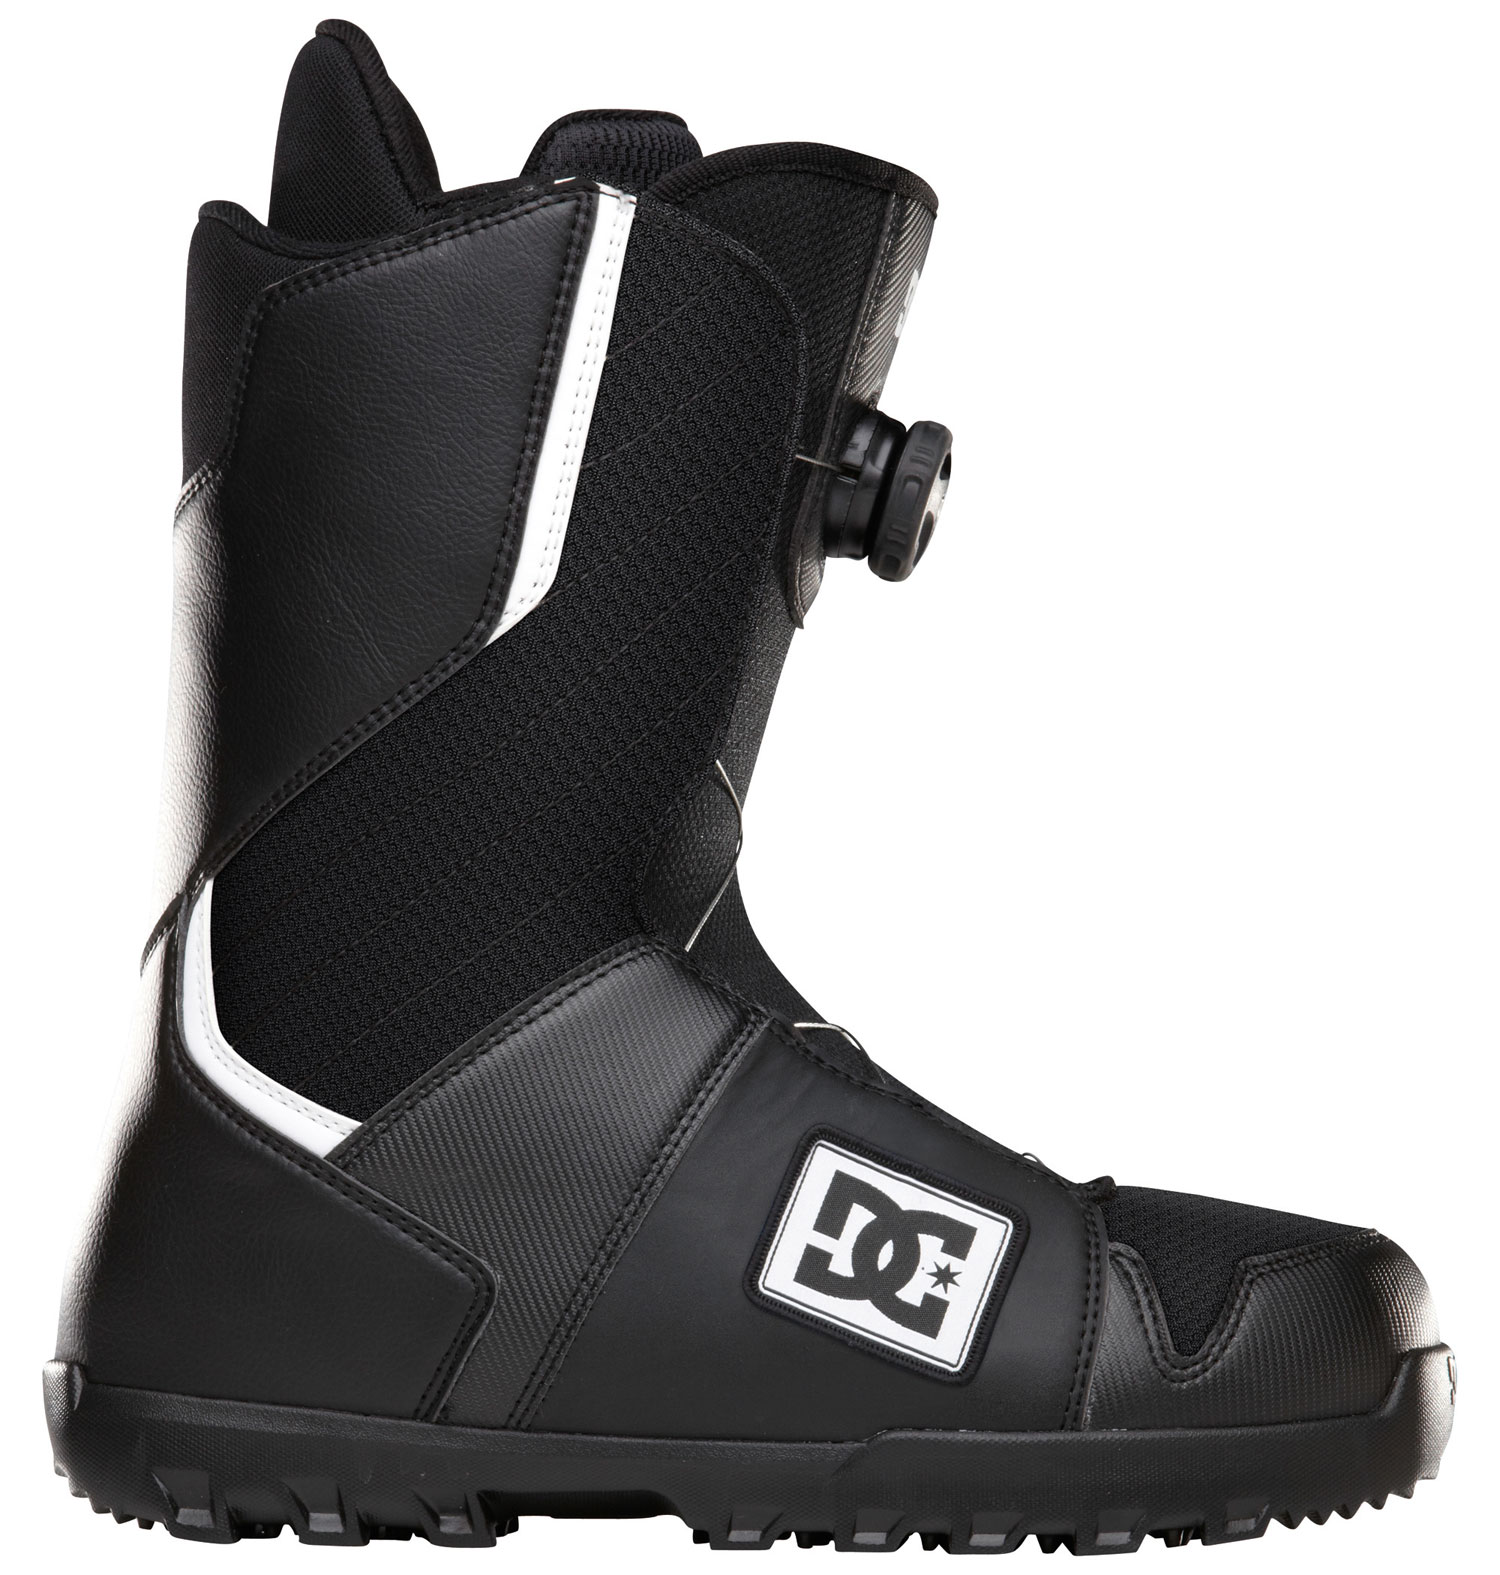 Snowboard Out of the box comfort and fit has made the scout one of dc's most popular boots!Key Features of the DC Scout Snowboard Boots: Flex: 5 Boa Coiler UniLite: DC's proprietary outsole technology, UnILIte provides traction, durability, dampening, and cushioning all while drastically reducing weight. UnILIte soles feature distinct traction patterns for ascending, descending, and skating around with our Push Zone tread pattern. the snow-shedding traction designs also prevent snow from building up and clogging bindings. Command Liner: multi density zones, aegis, lace closure, anatomical J-bars - $125.95